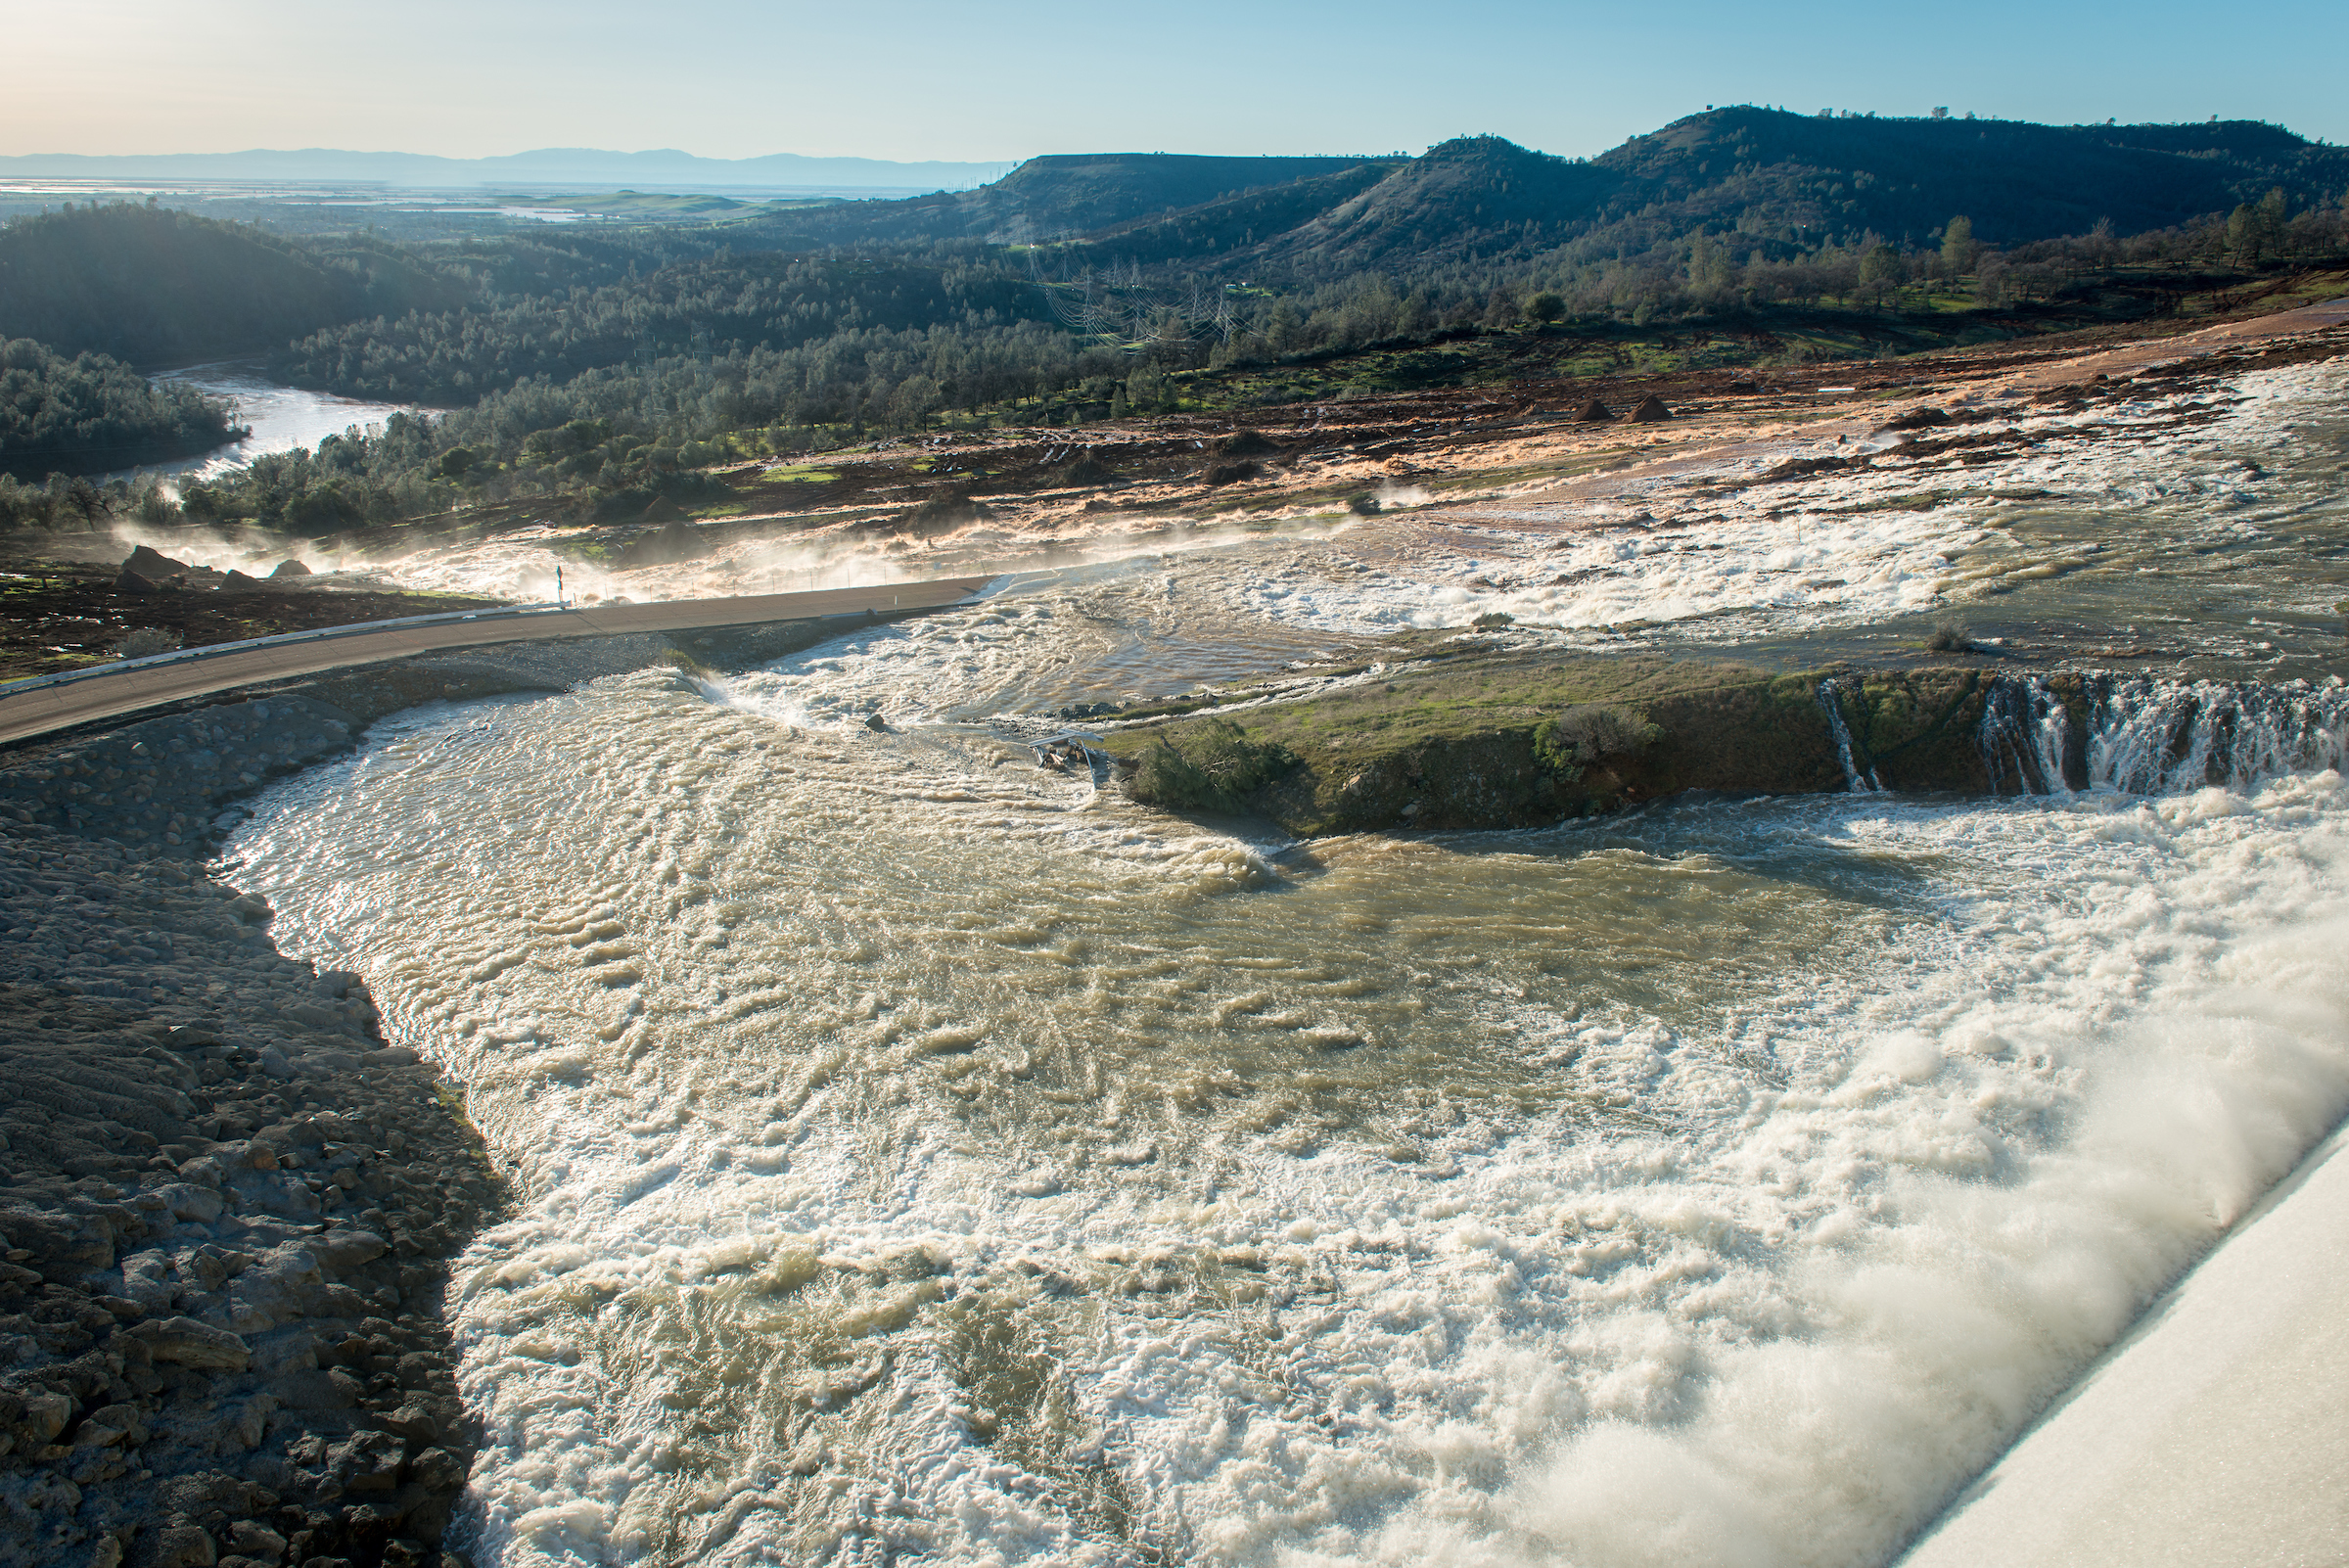 Lake Oroville Spillway Level